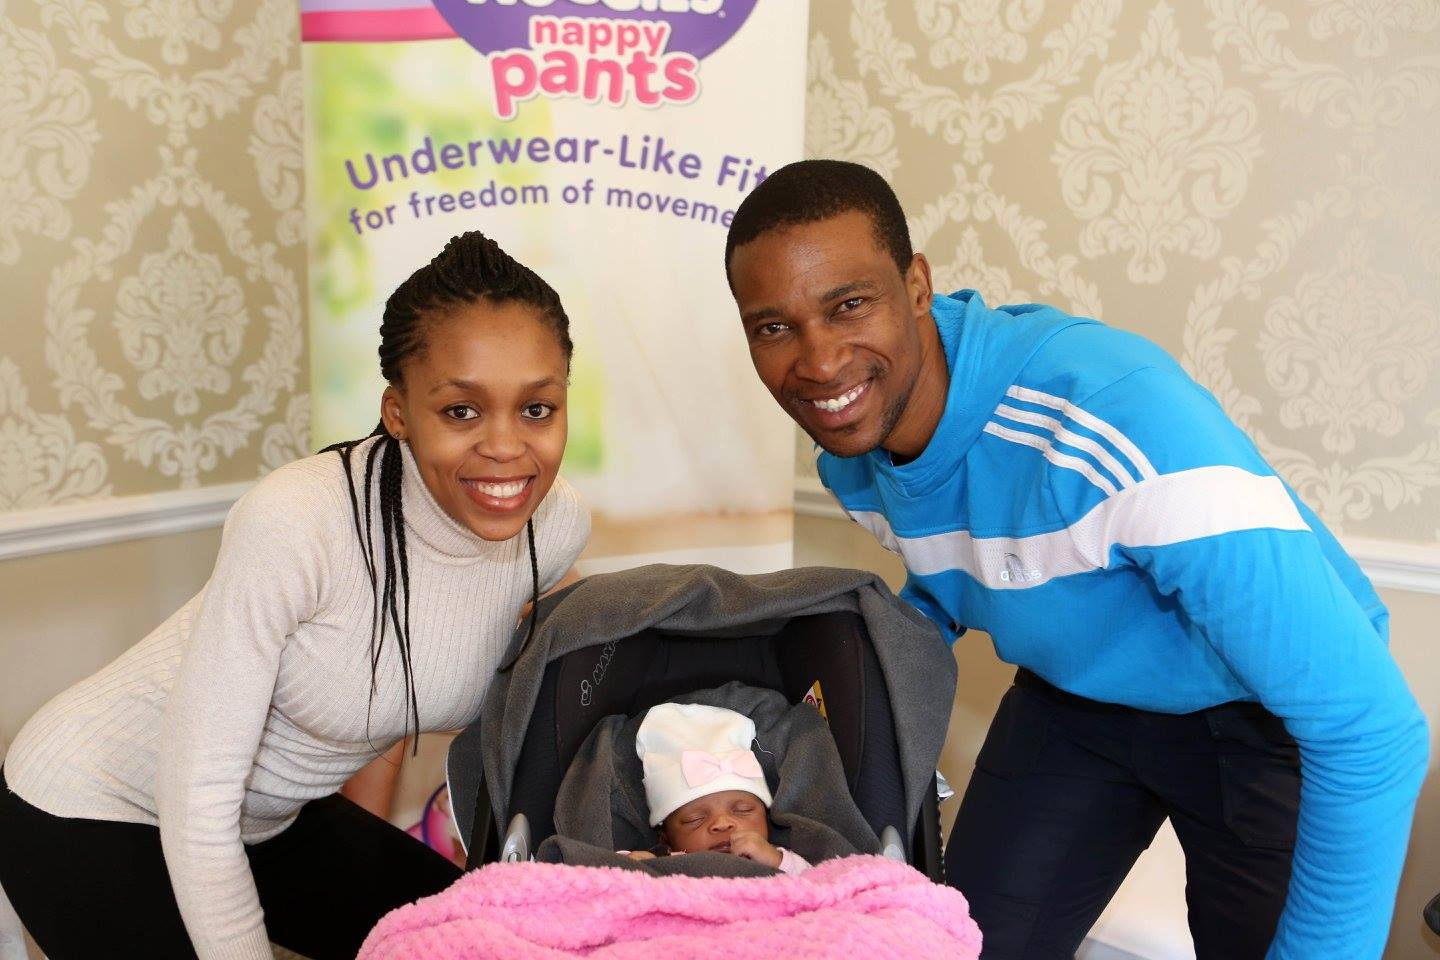 Huggies New Baby & Nappy Pants Launch